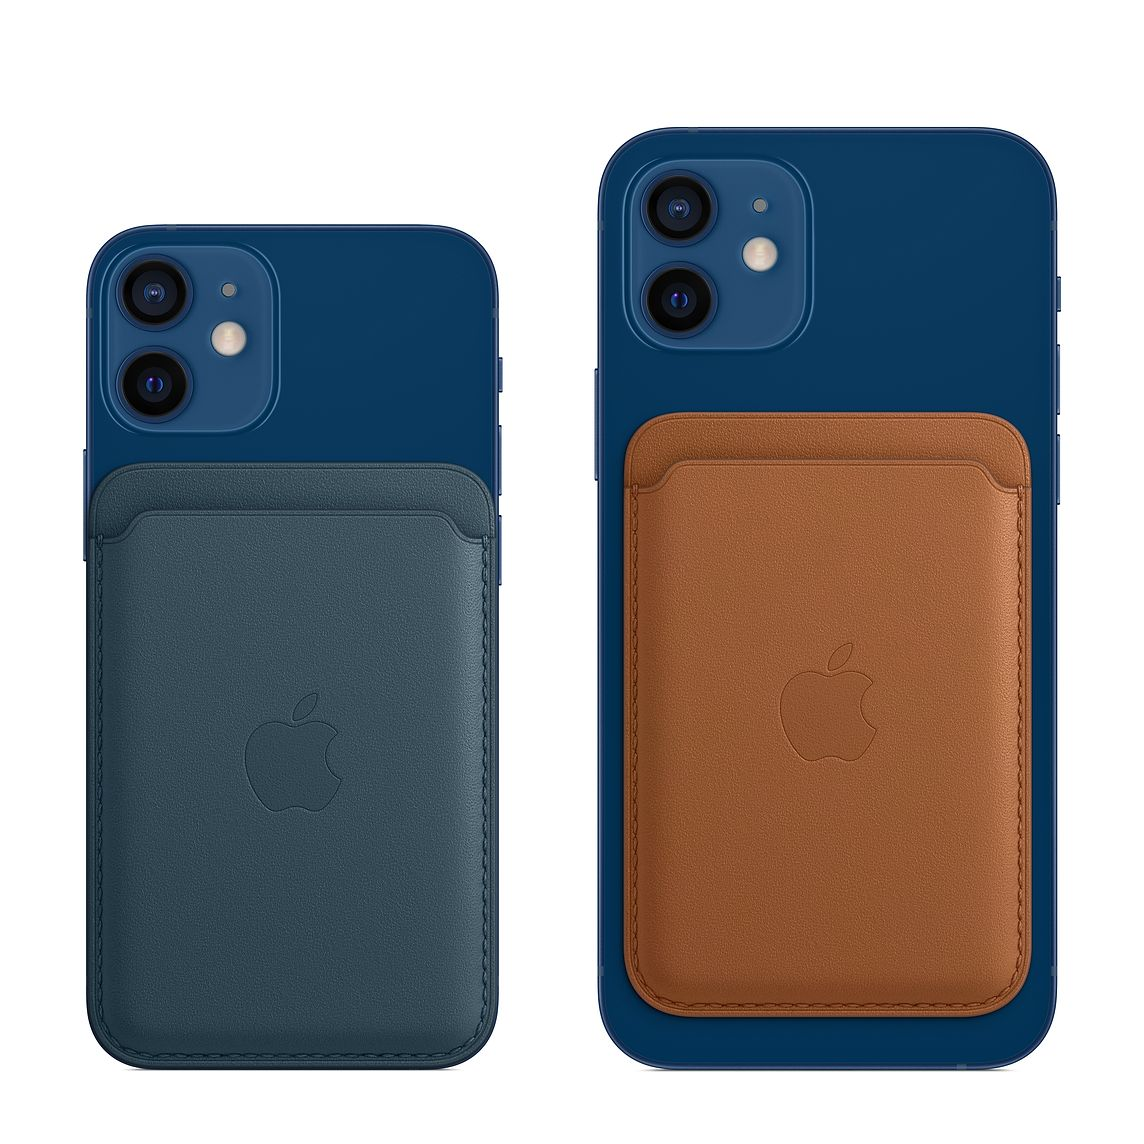 - iPhone Leather Wallet with MagSafe / Azul Baltico 3